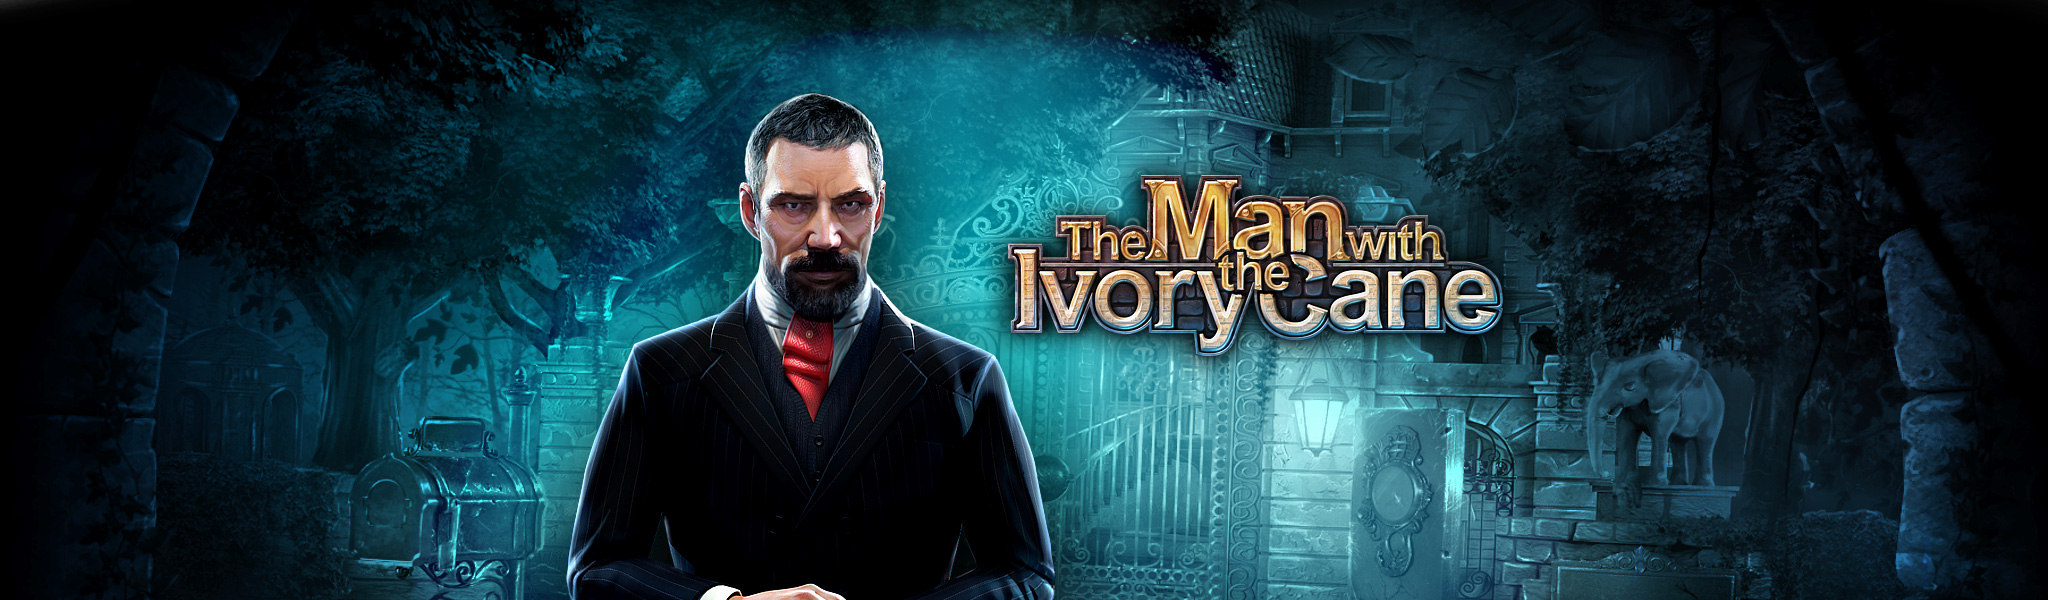 The Man with the Ivory Cane (2019) полная версия